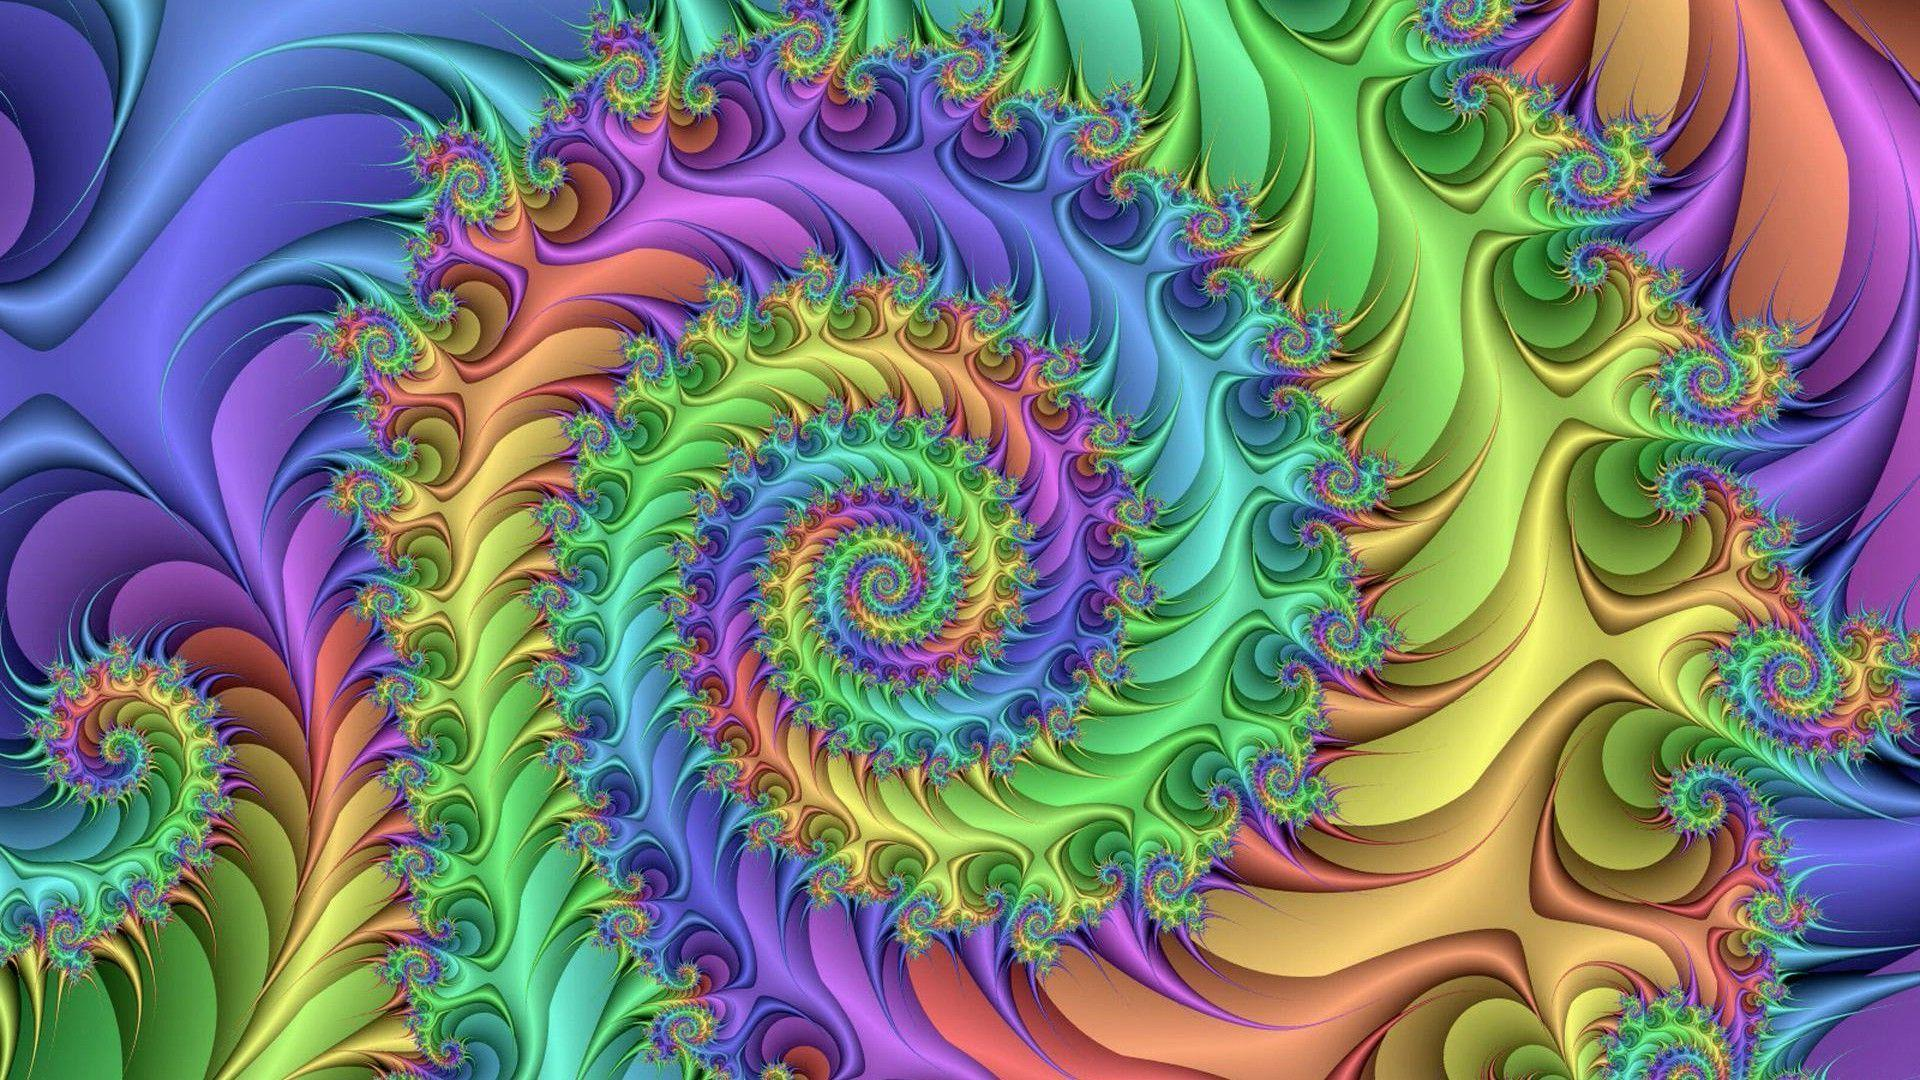 psychedelic hd 1080 wallpapers sexy - photo #4